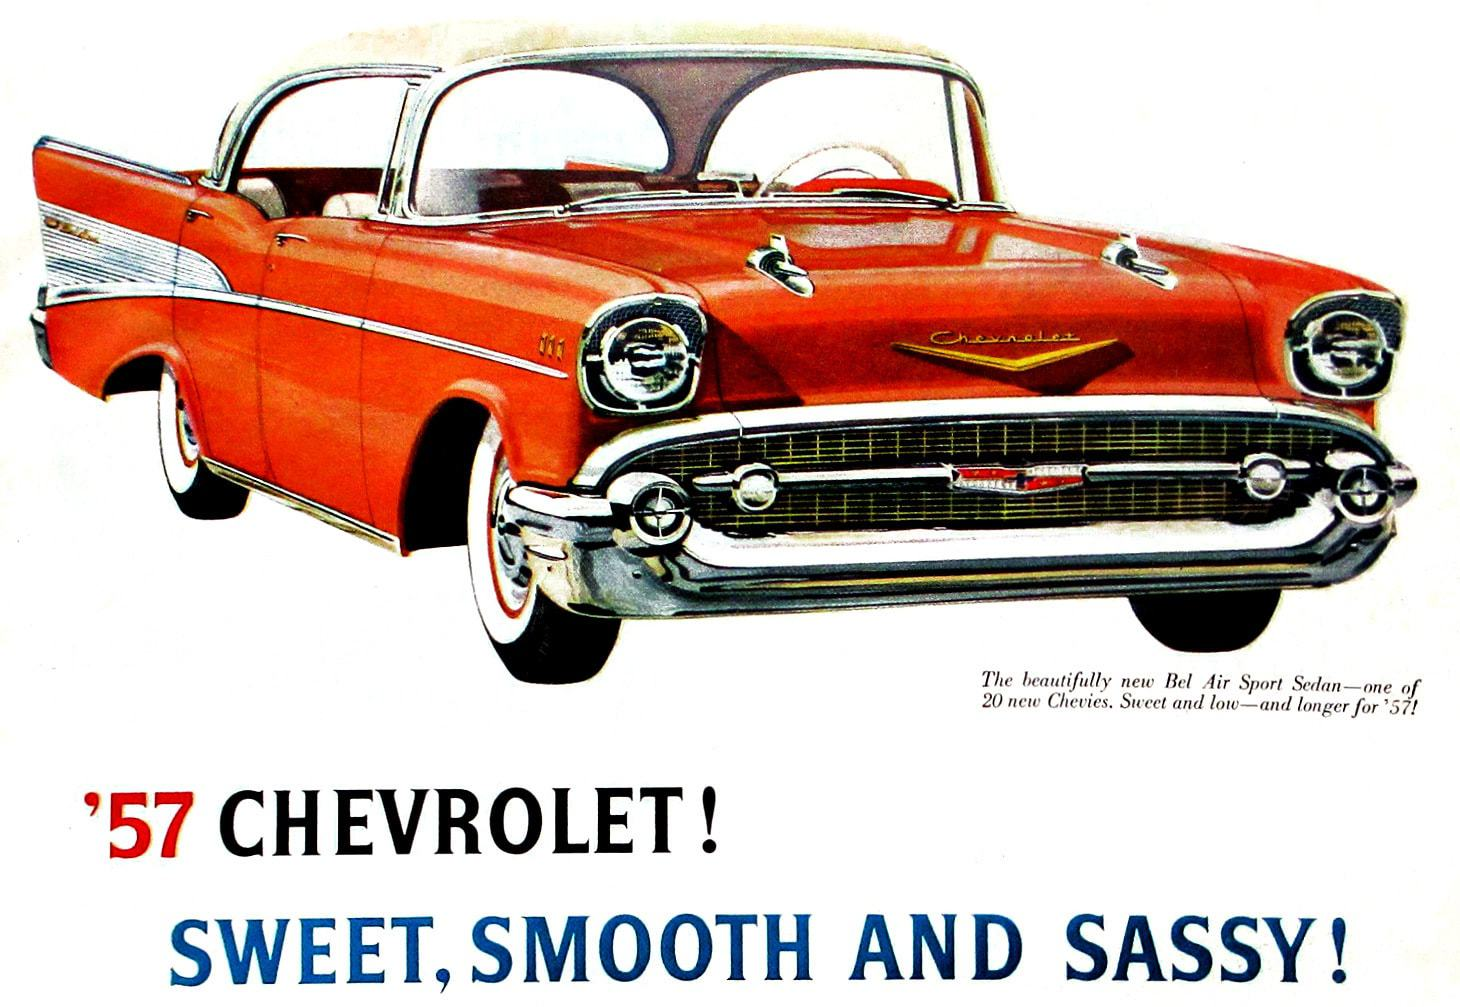 57 Chevrolet! Sweet, smooth and sassy!